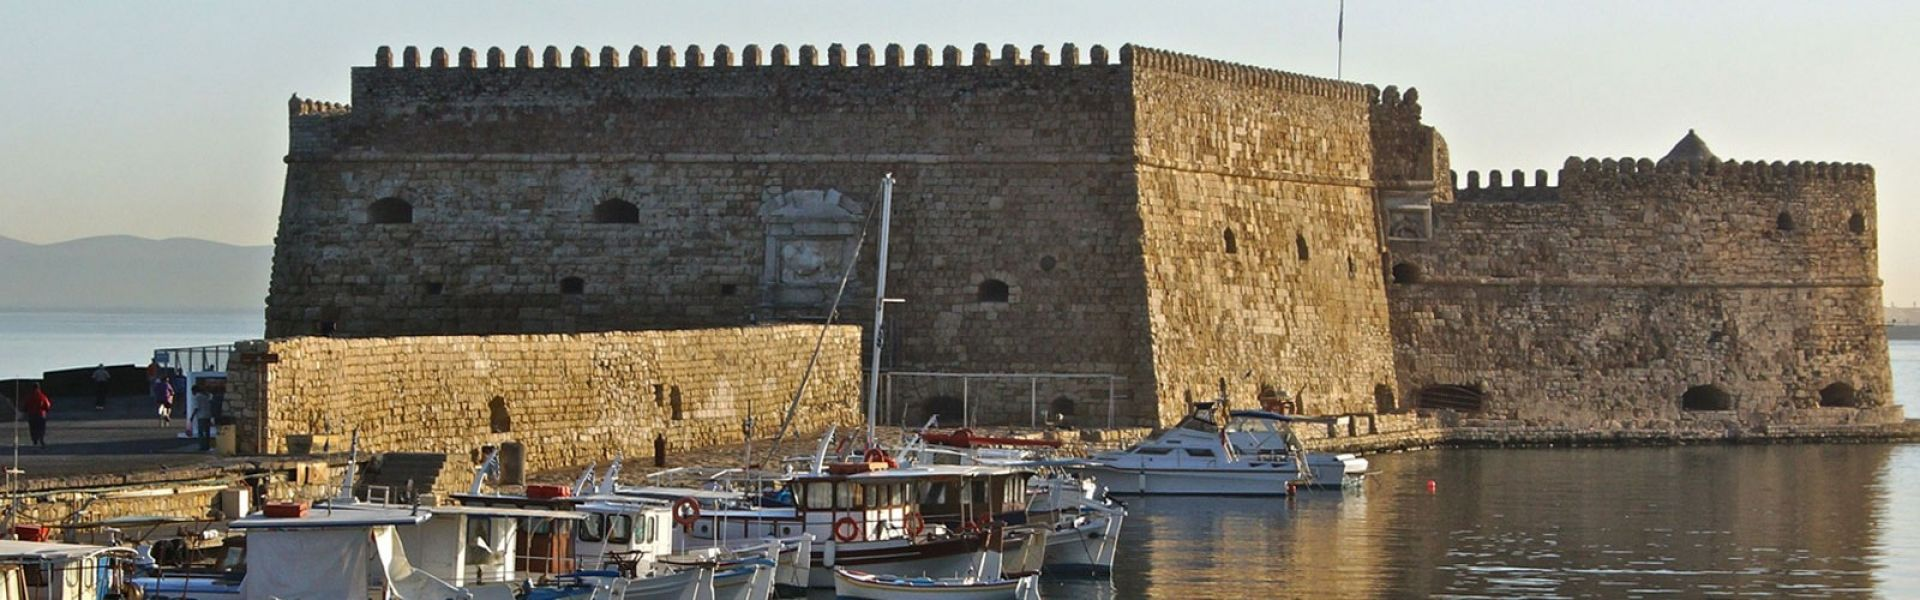 Venetian Fortress - Heraklion city